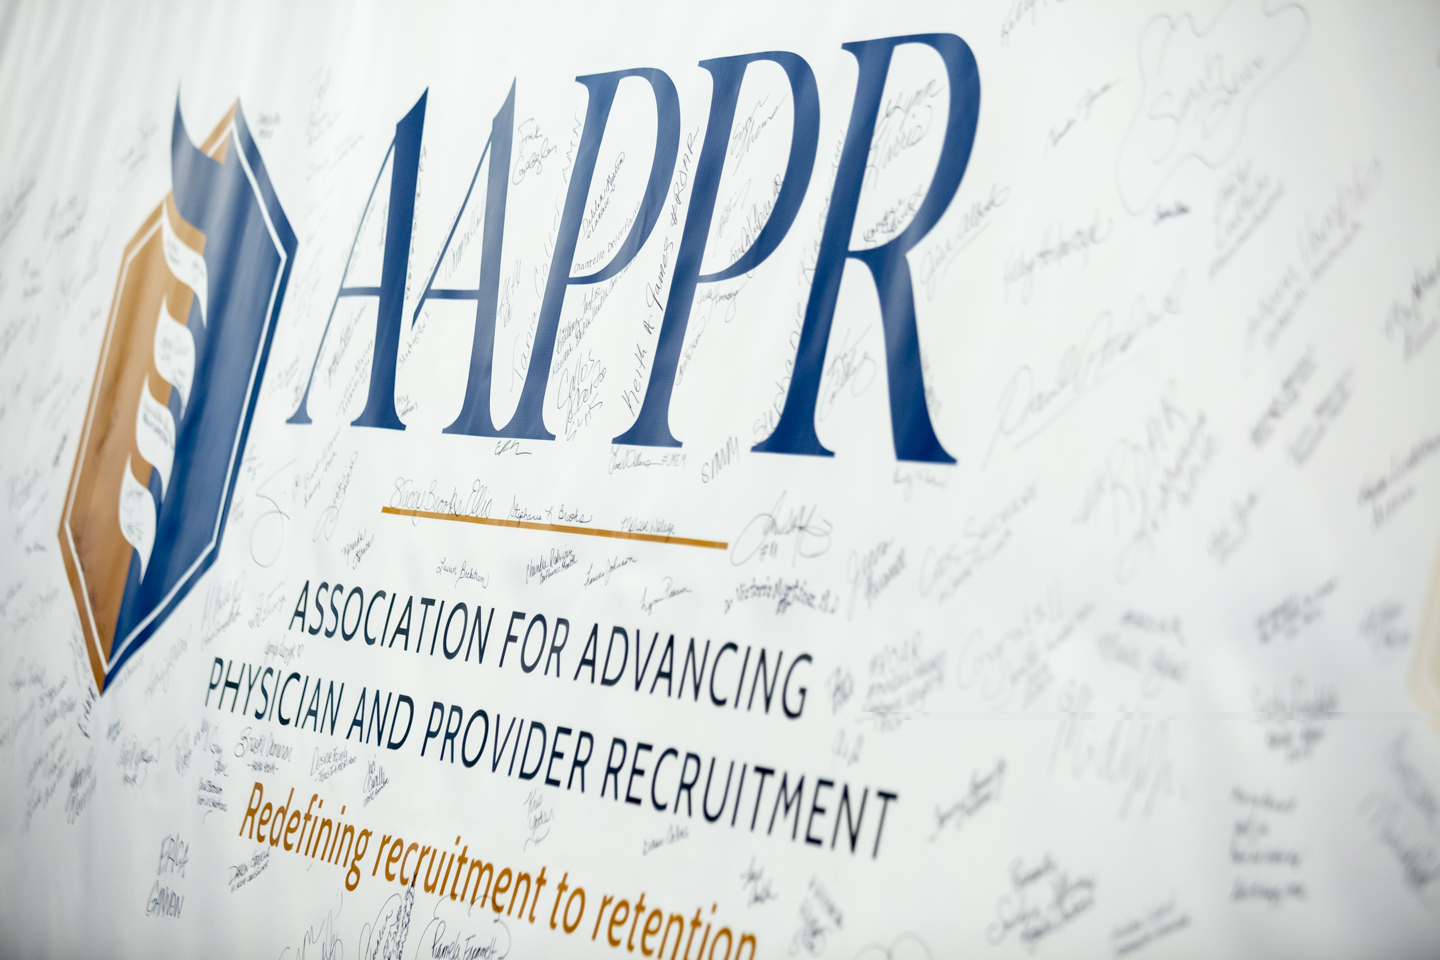 AAPPR-Conference-Expo-Professional-Event-Photography-Photographer-Orlando-brand-37.jpg